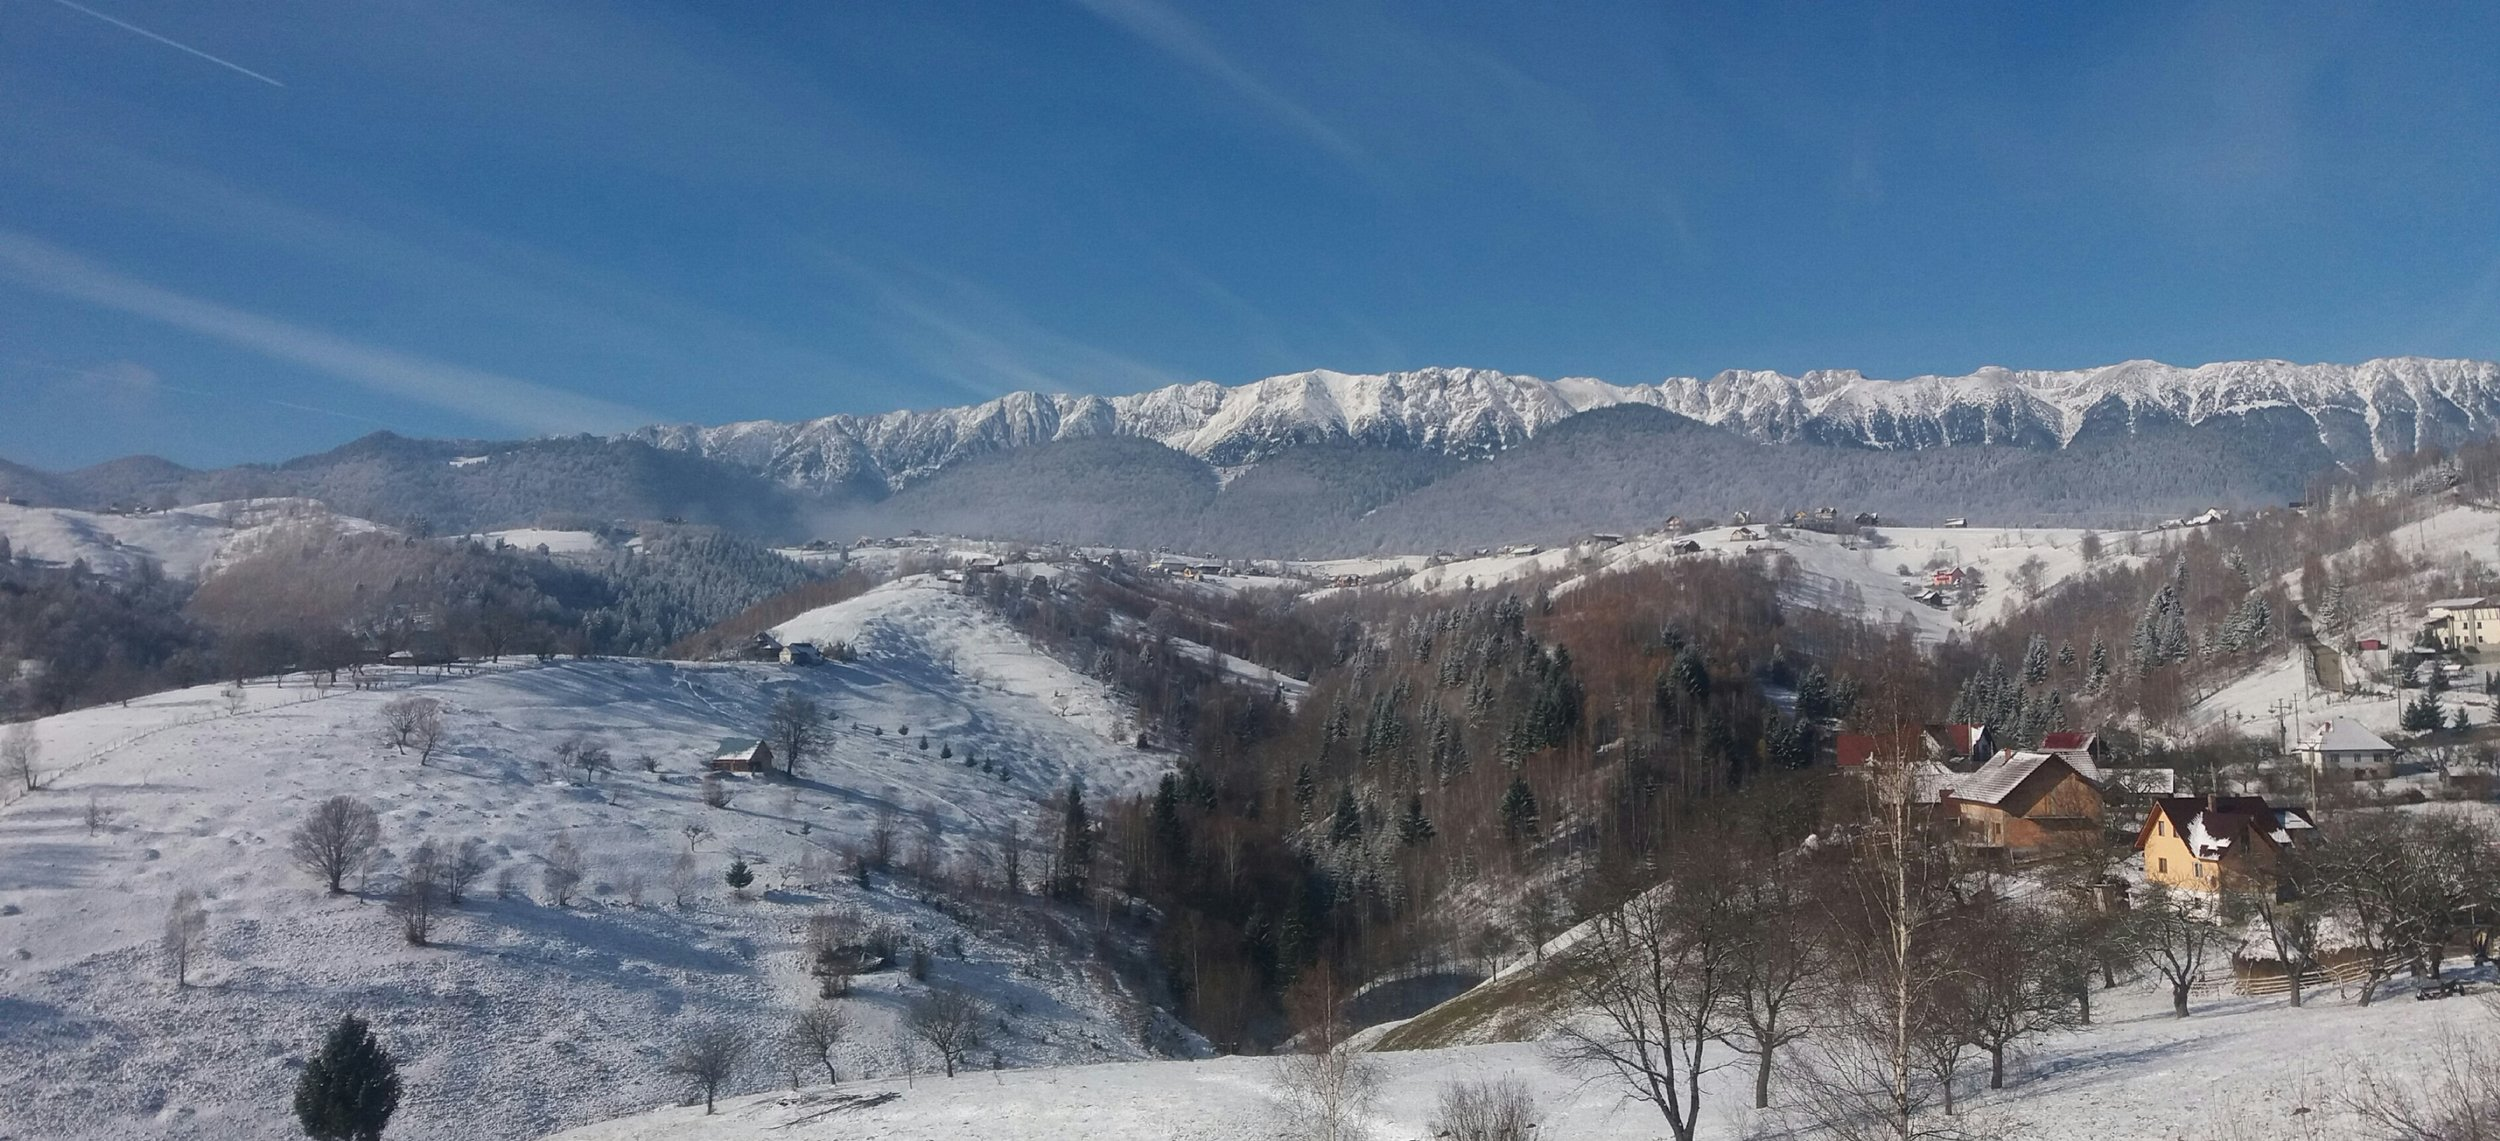 View With Mountains And Snow In Transylvania